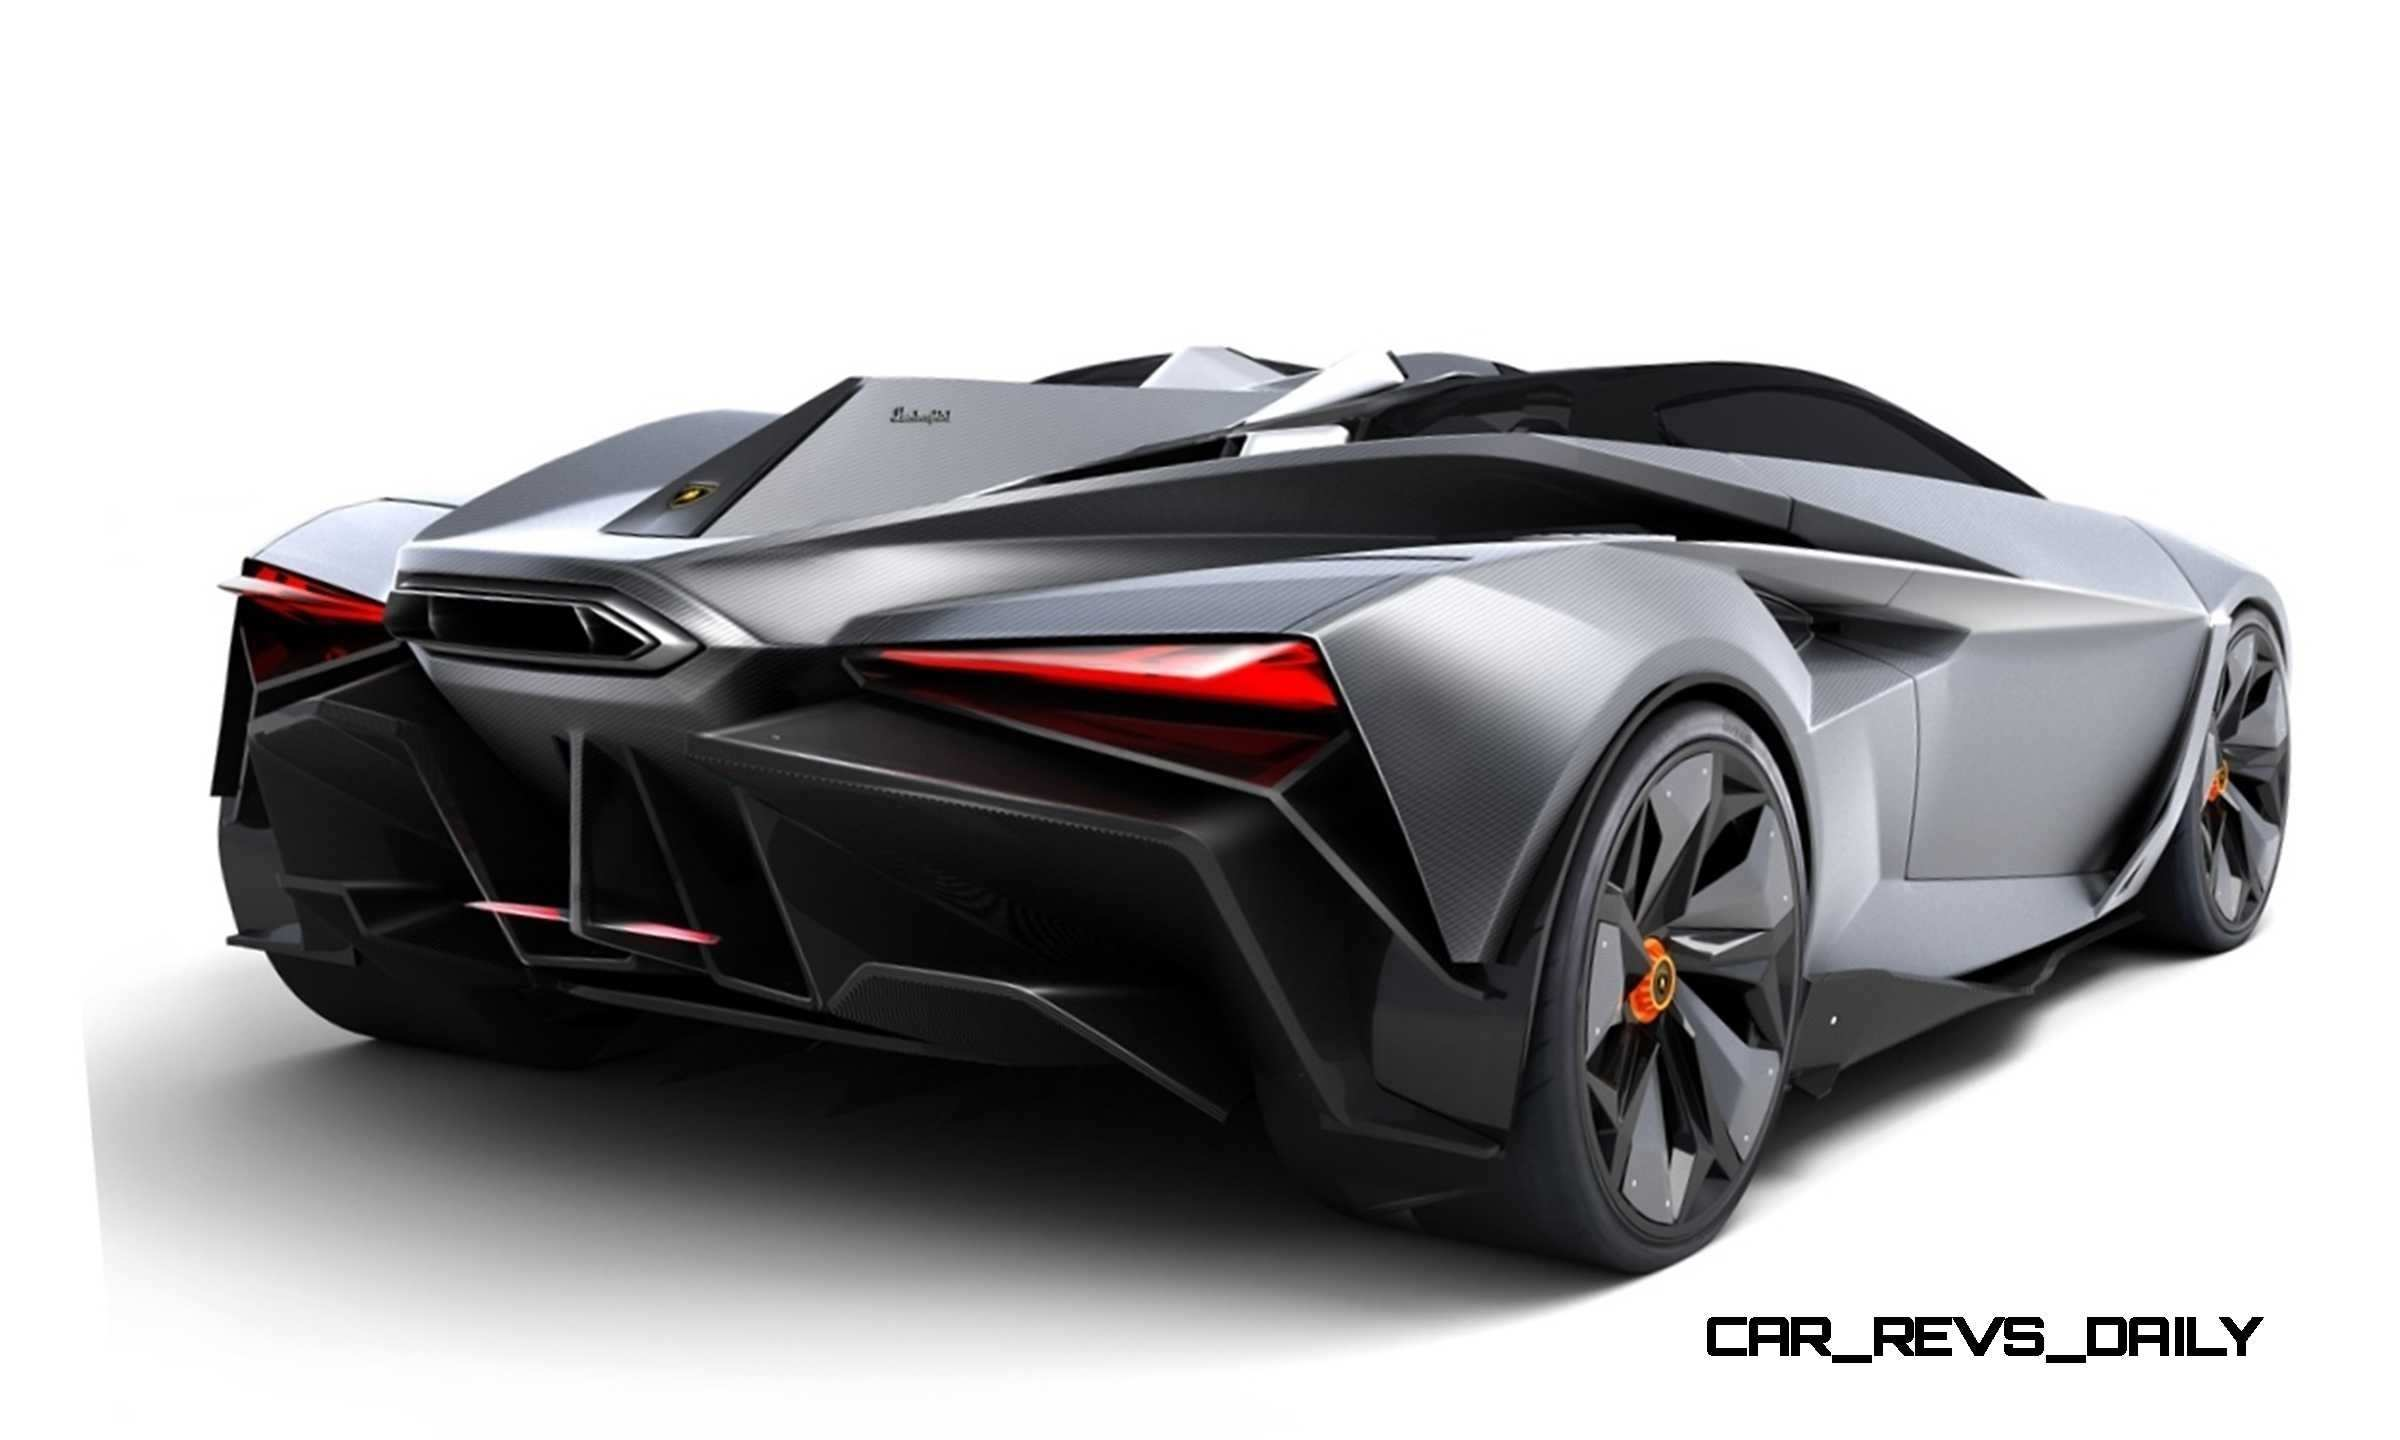 95 The 2020 Lamborghini Price New Concept with 2020 Lamborghini Price